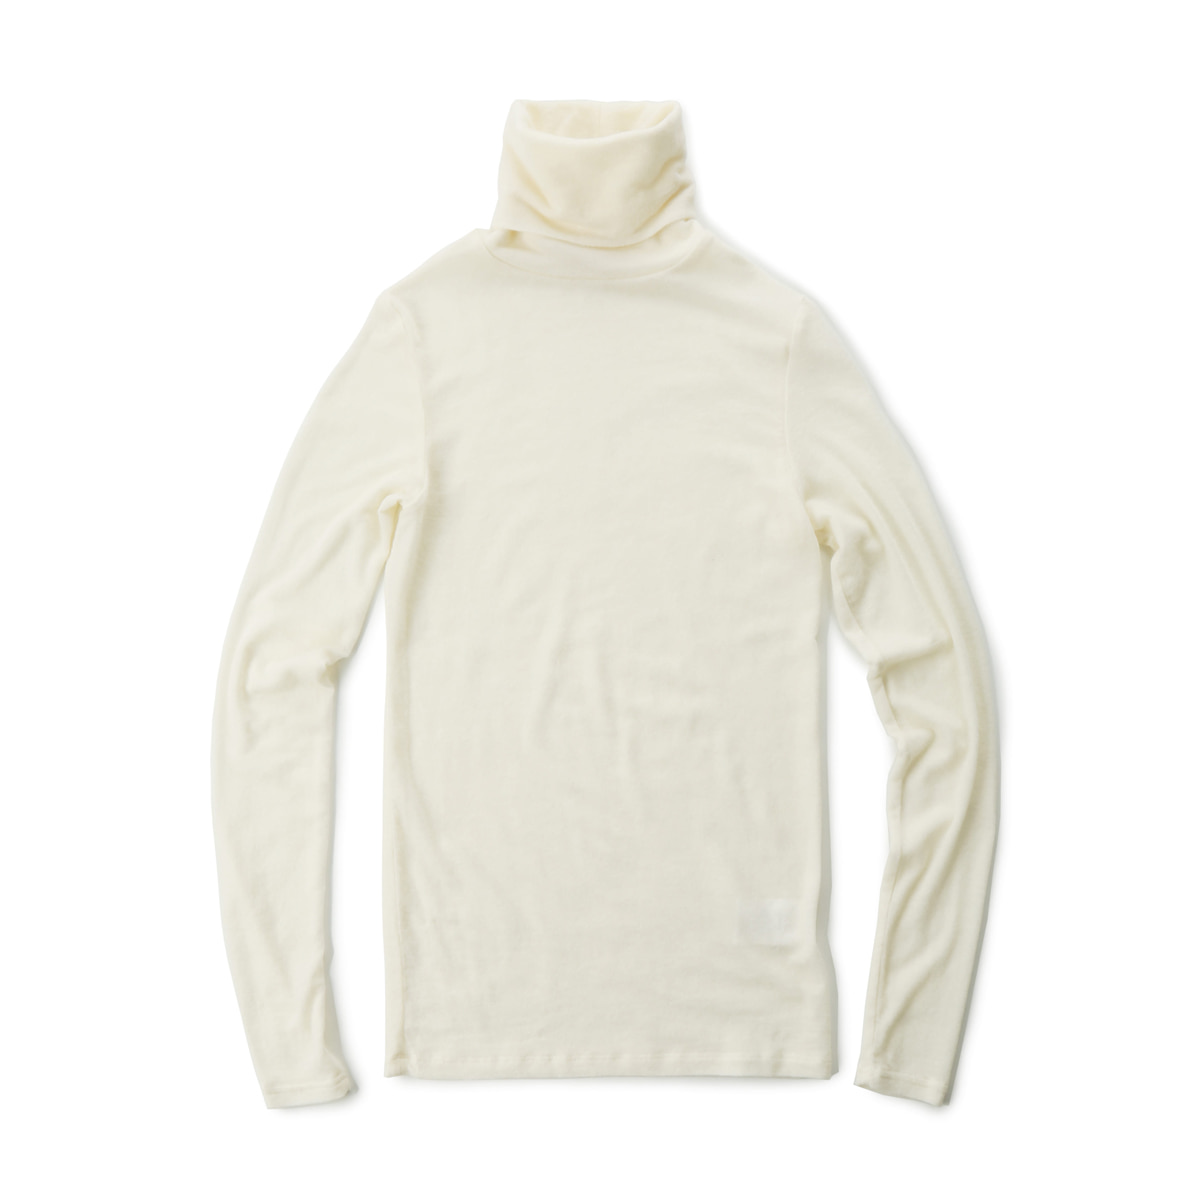 [MUSED] SUBTLE ROLL NECK JERSEY 'IVORY'